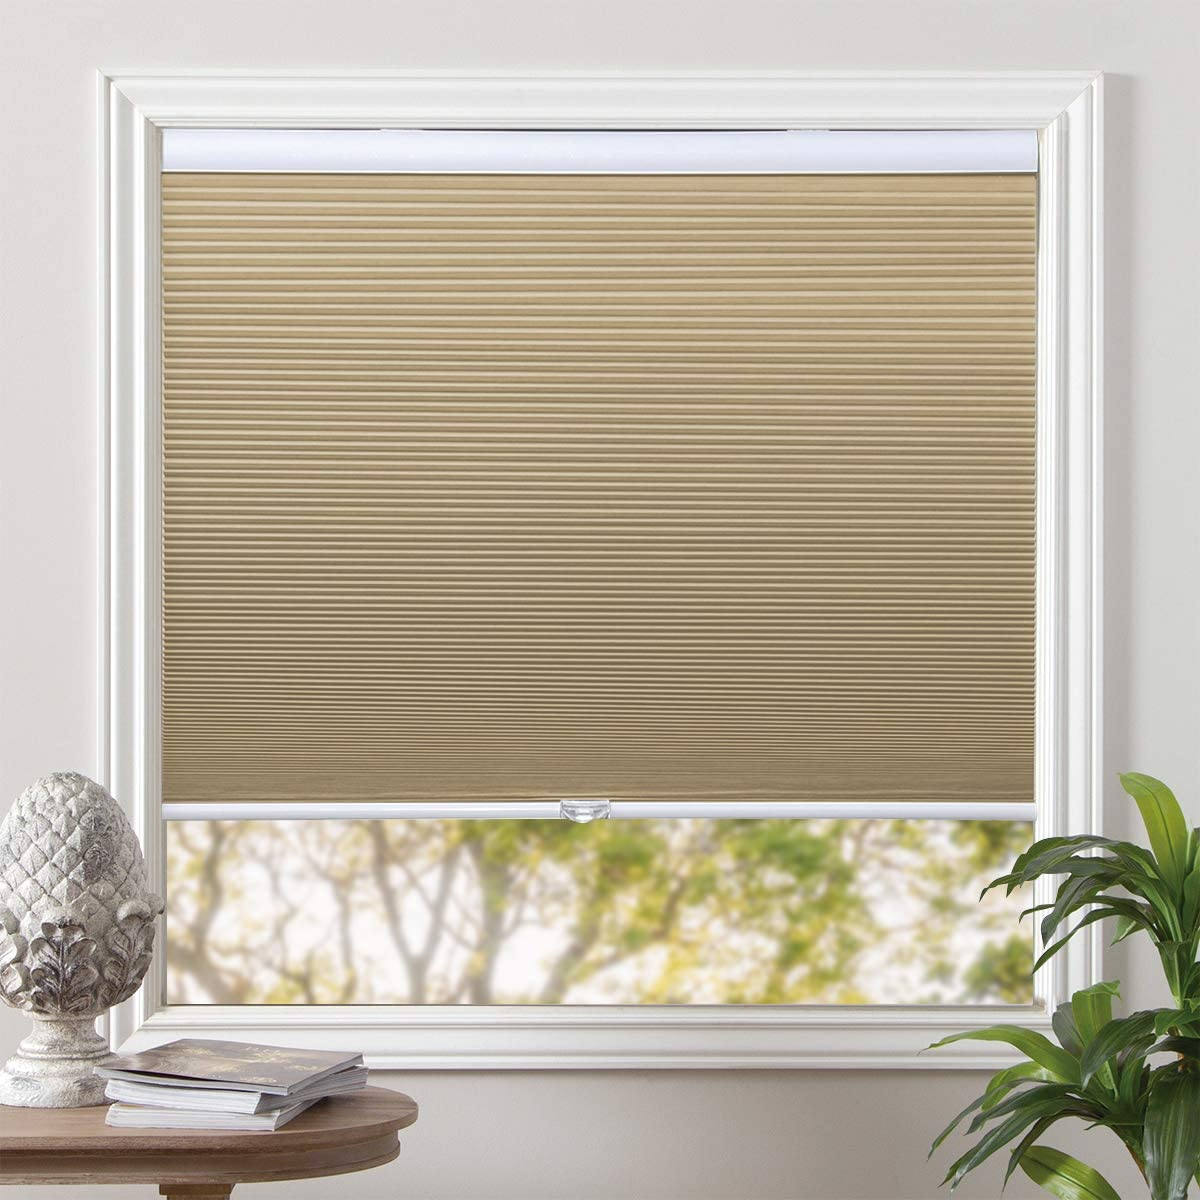 Grandekor Window Blinds Cordless Cellular Shades Blackout Fabric Blinds Honeycomb Shades Pale Beige-White, 35x64 inch